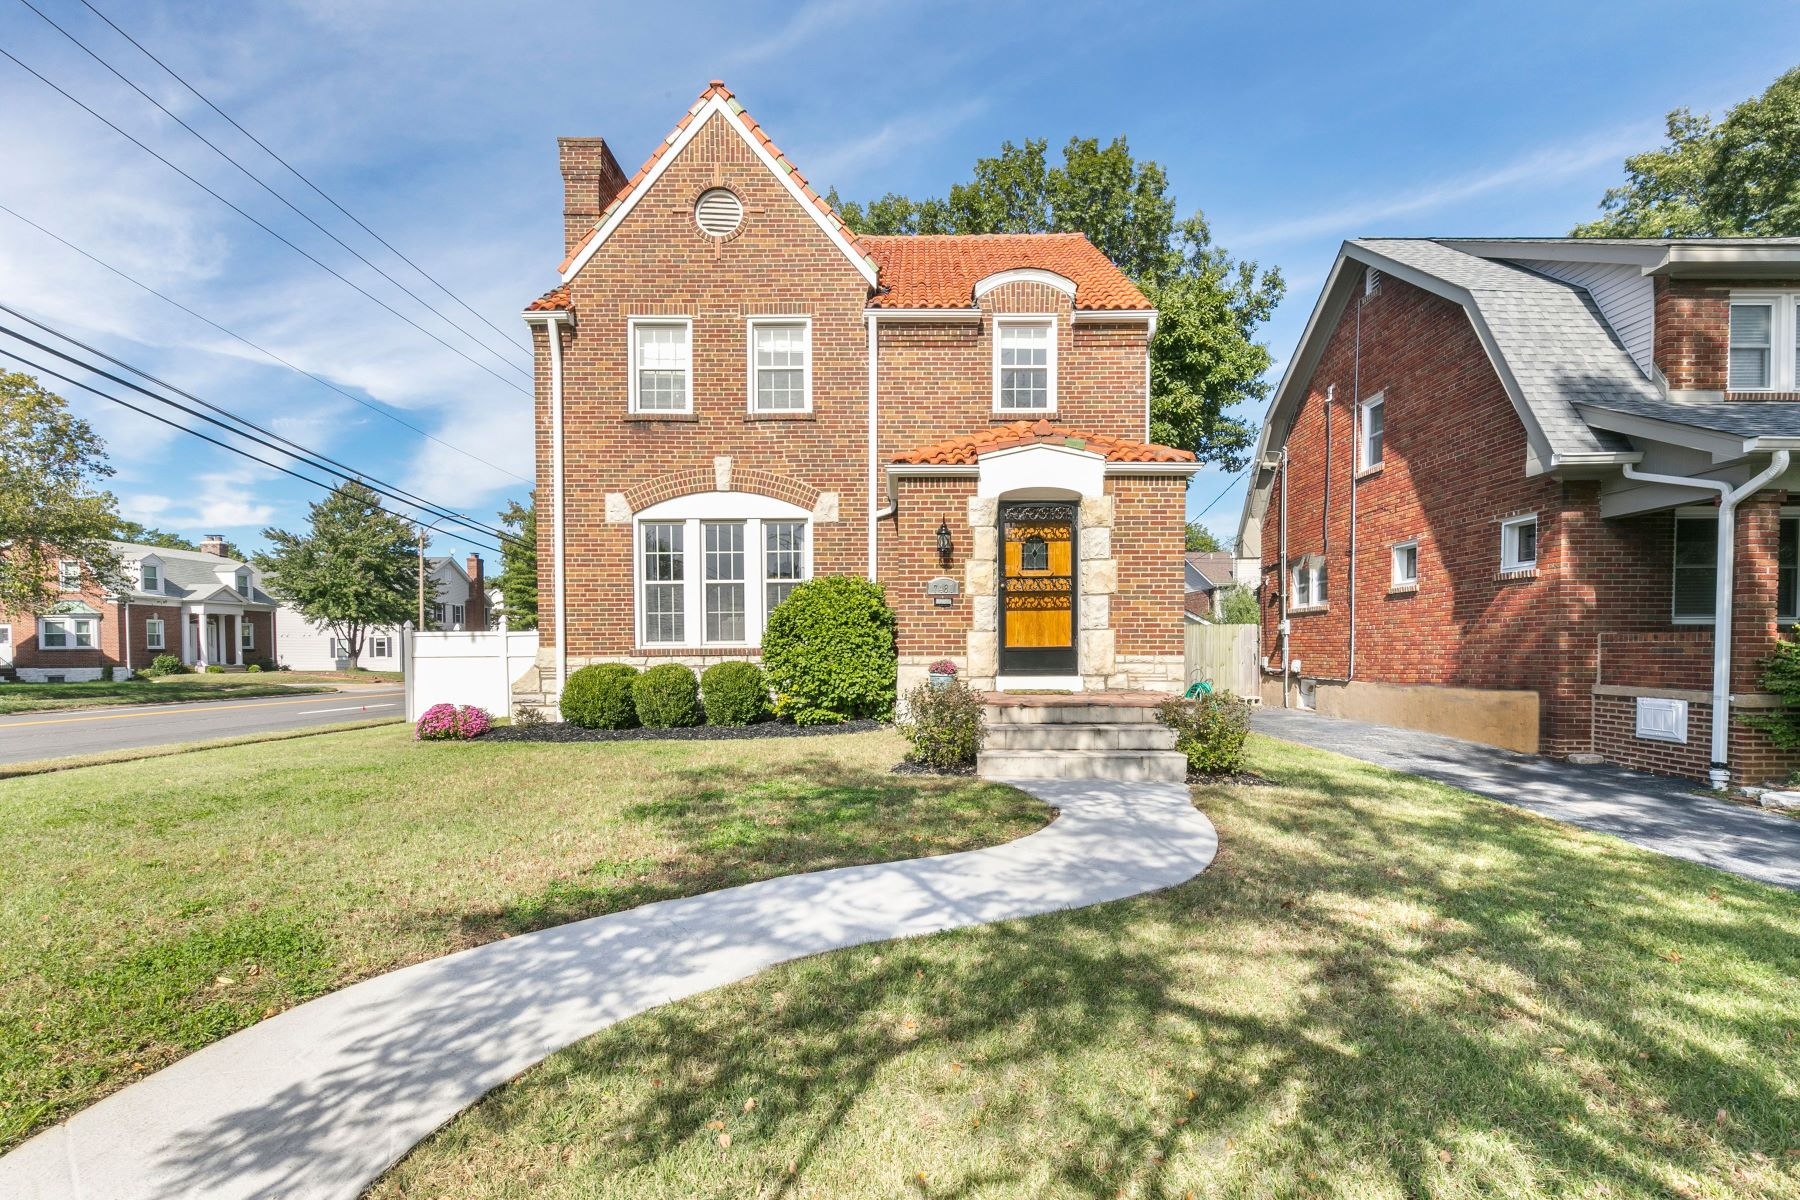 Single Family Homes for Sale at Charming University City Home 7481 Cornell Avenue University City, Missouri 63130 United States